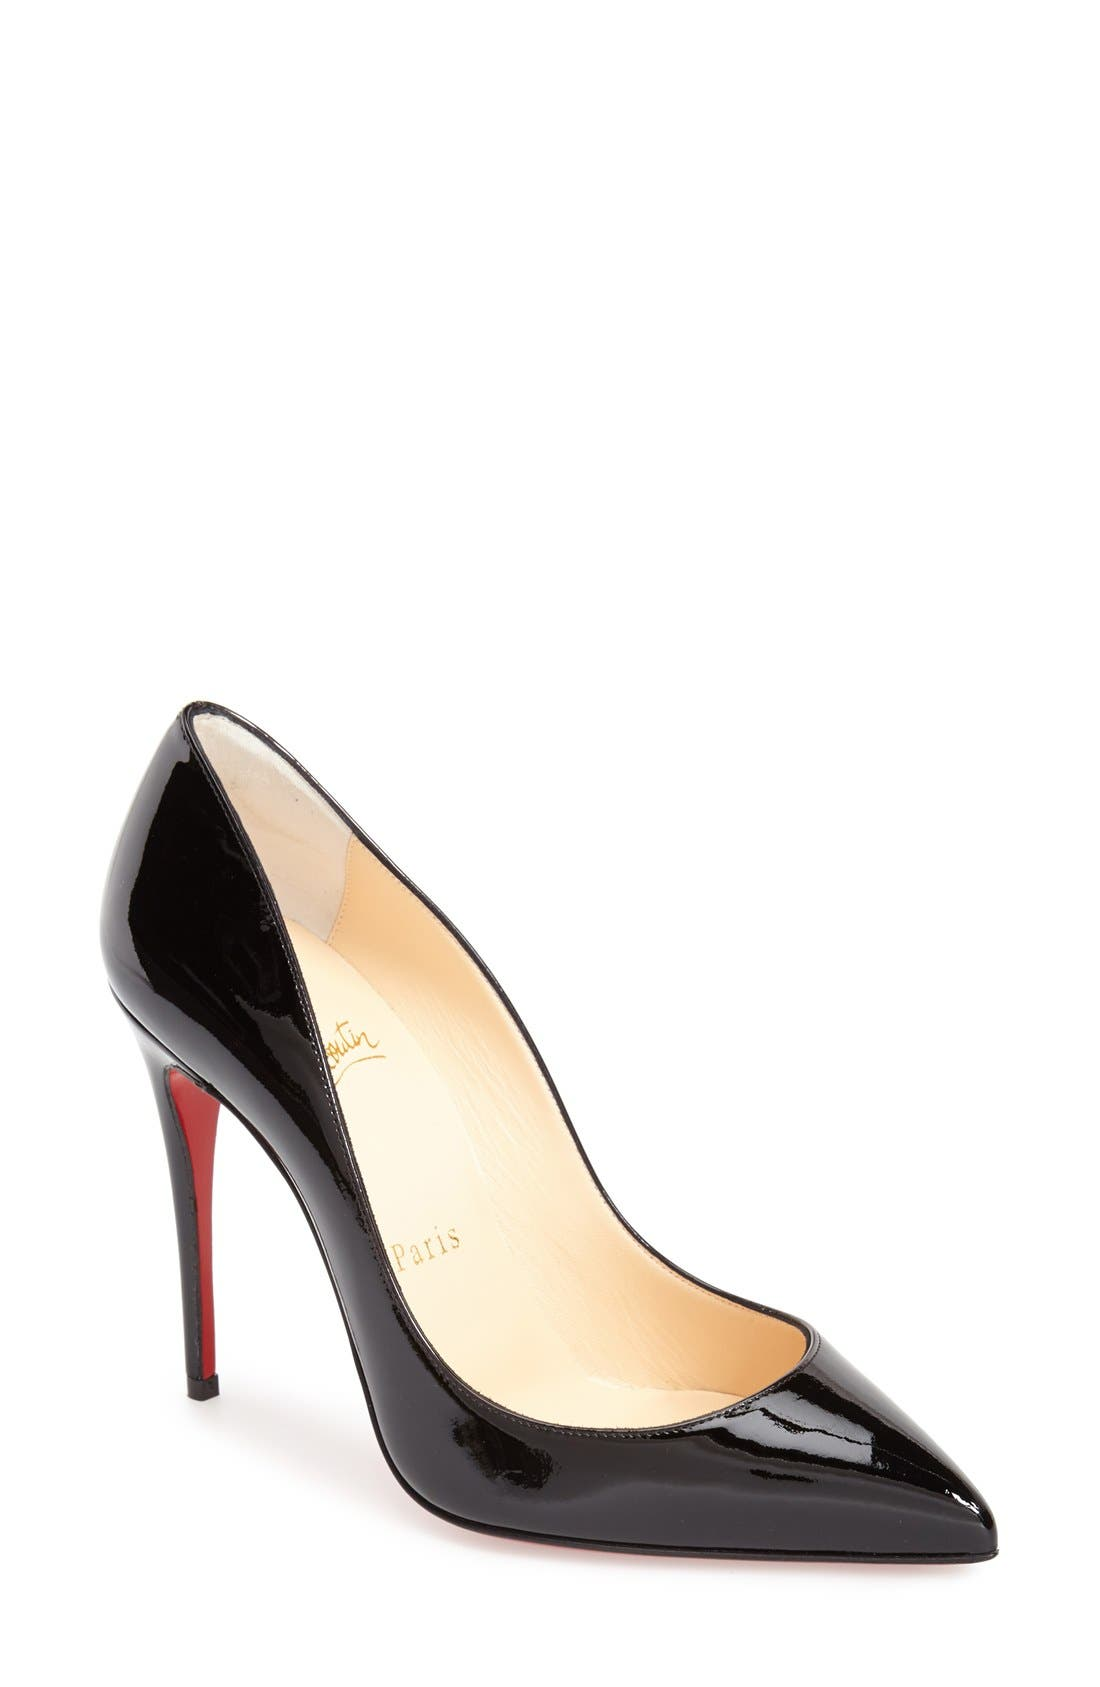 louboutin shop online paris